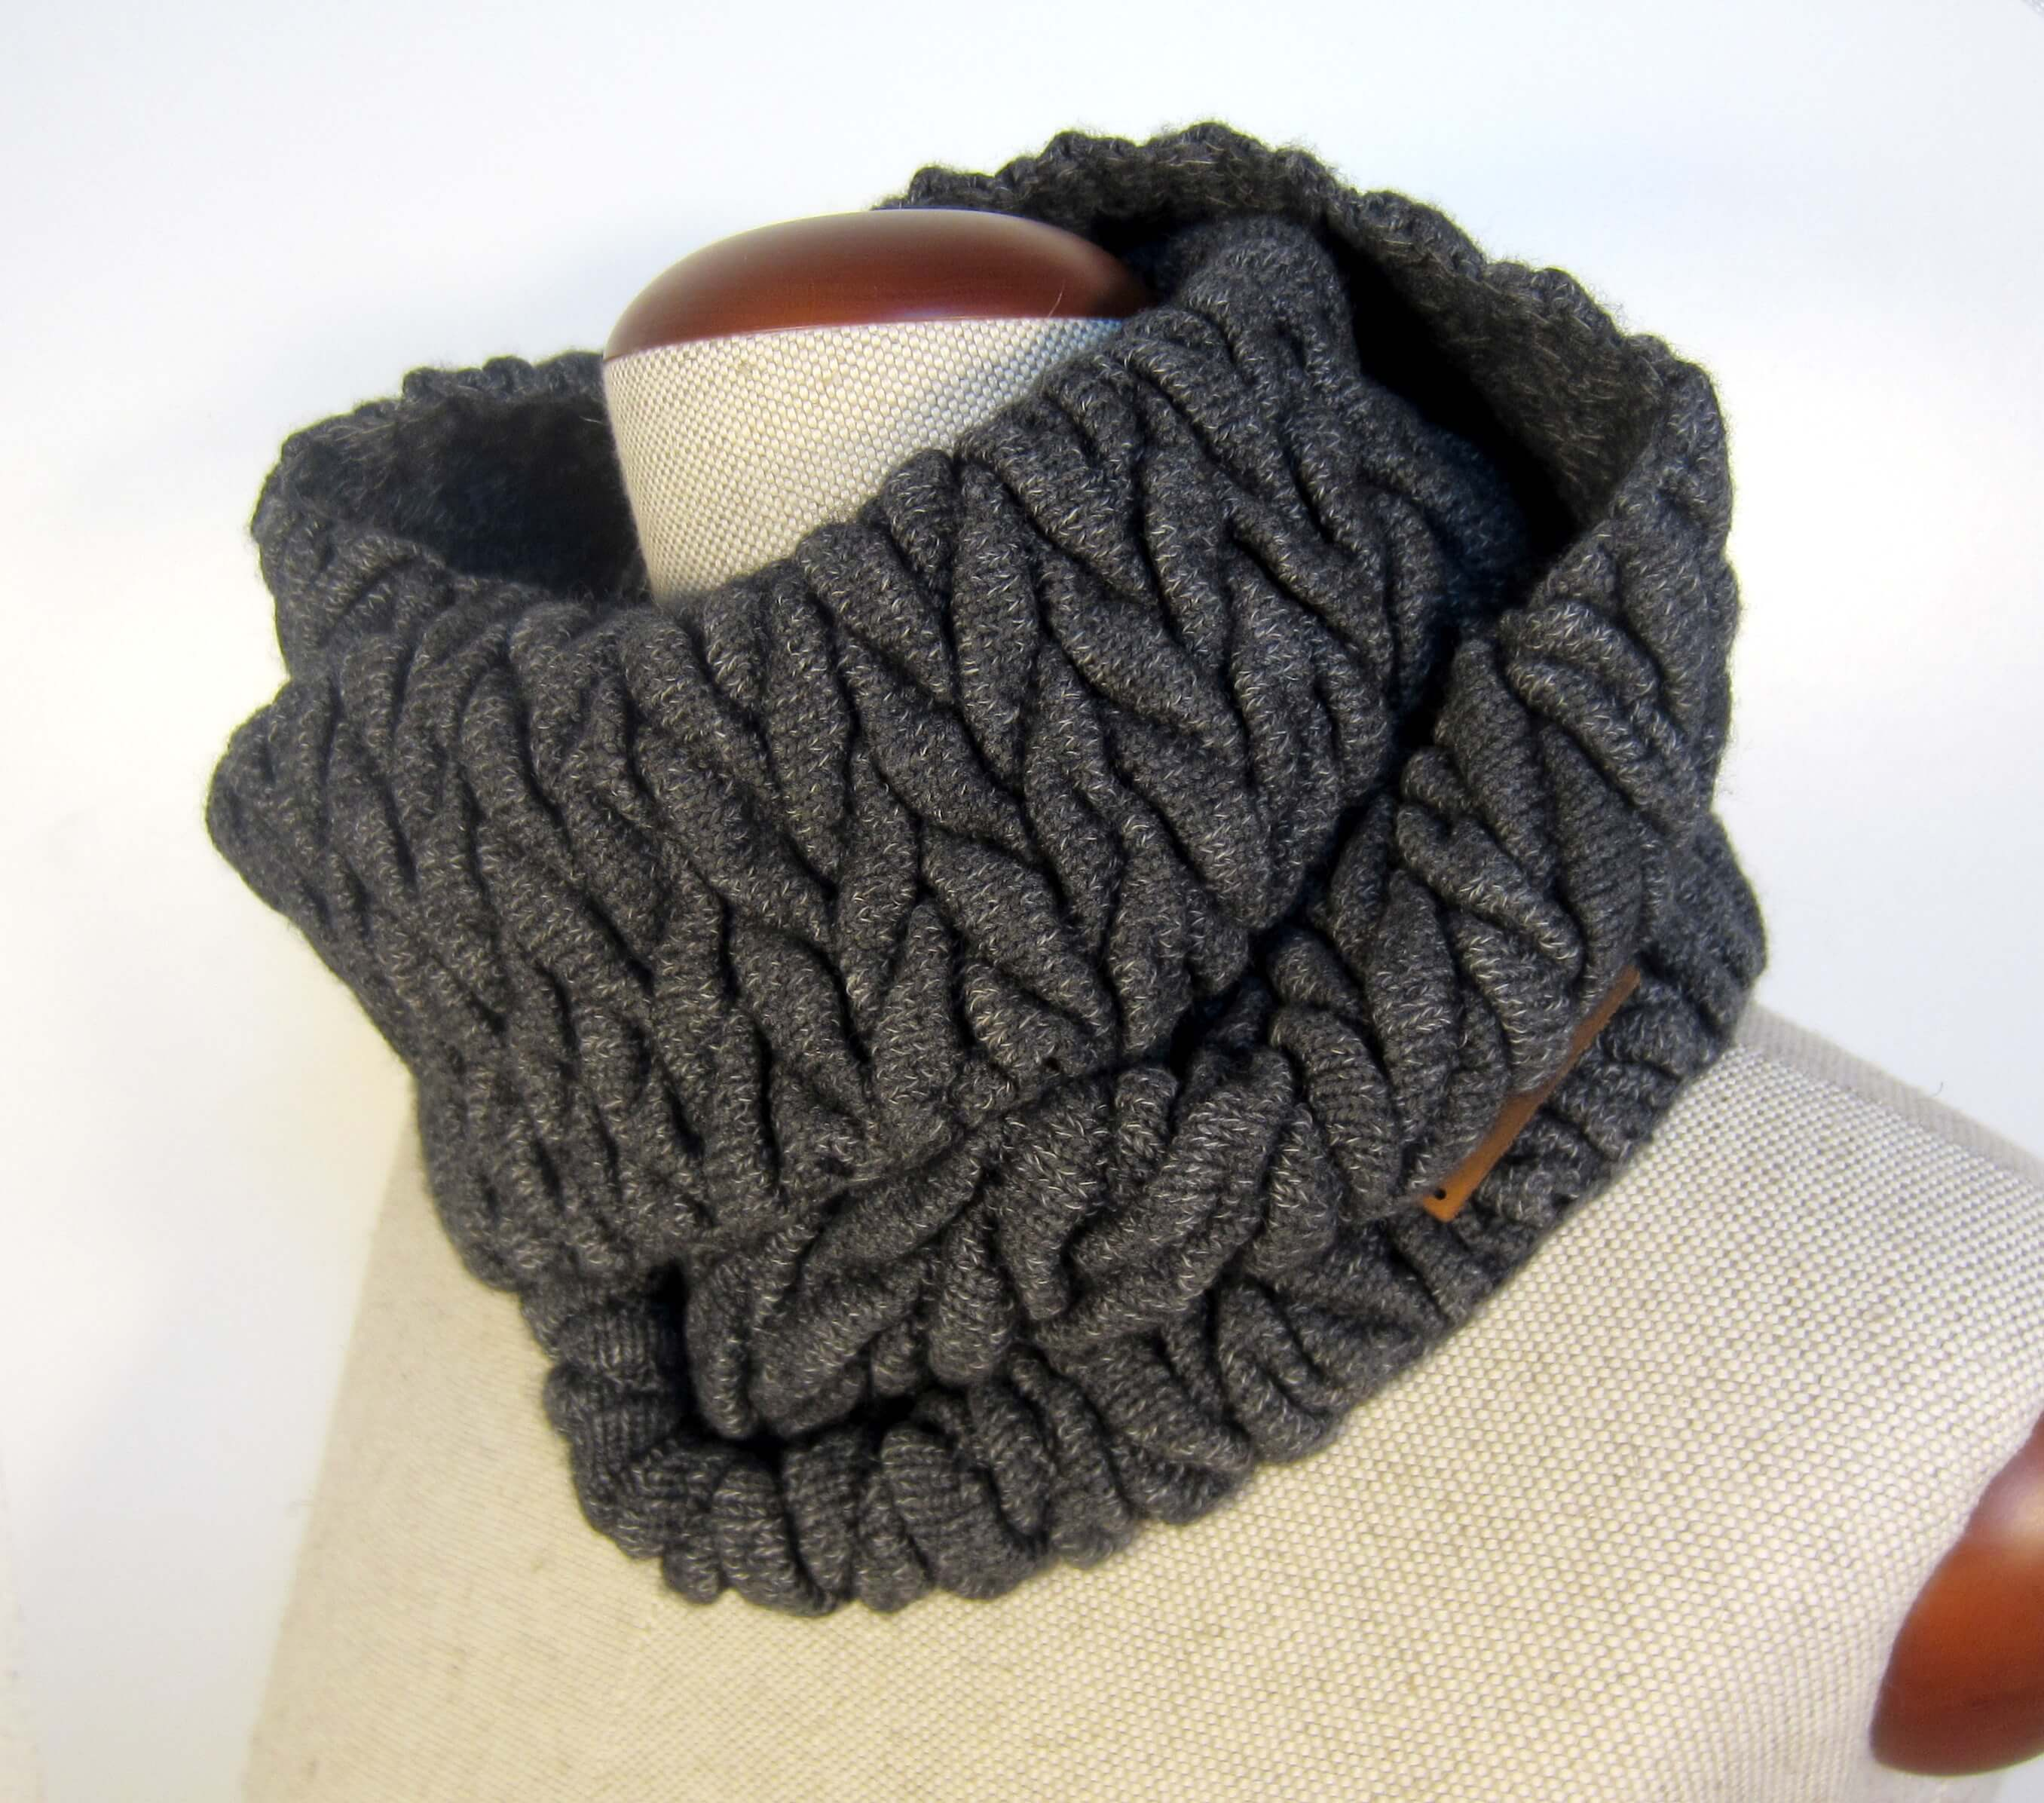 scarves scarf infinity winter seema stores image allproducts magic cashmere main feel